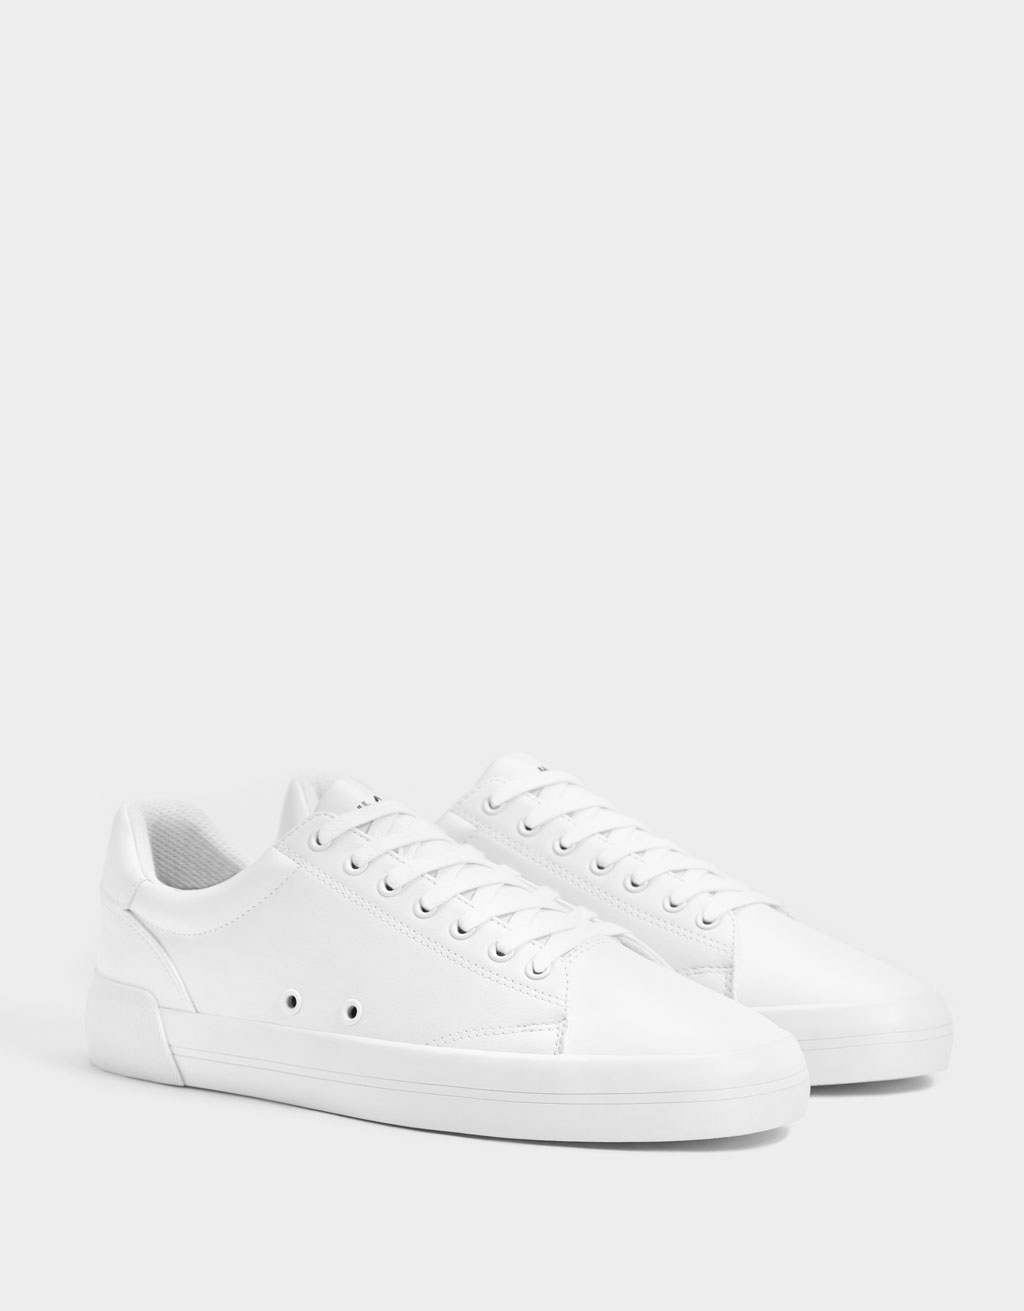 Men's white monochrome trainers